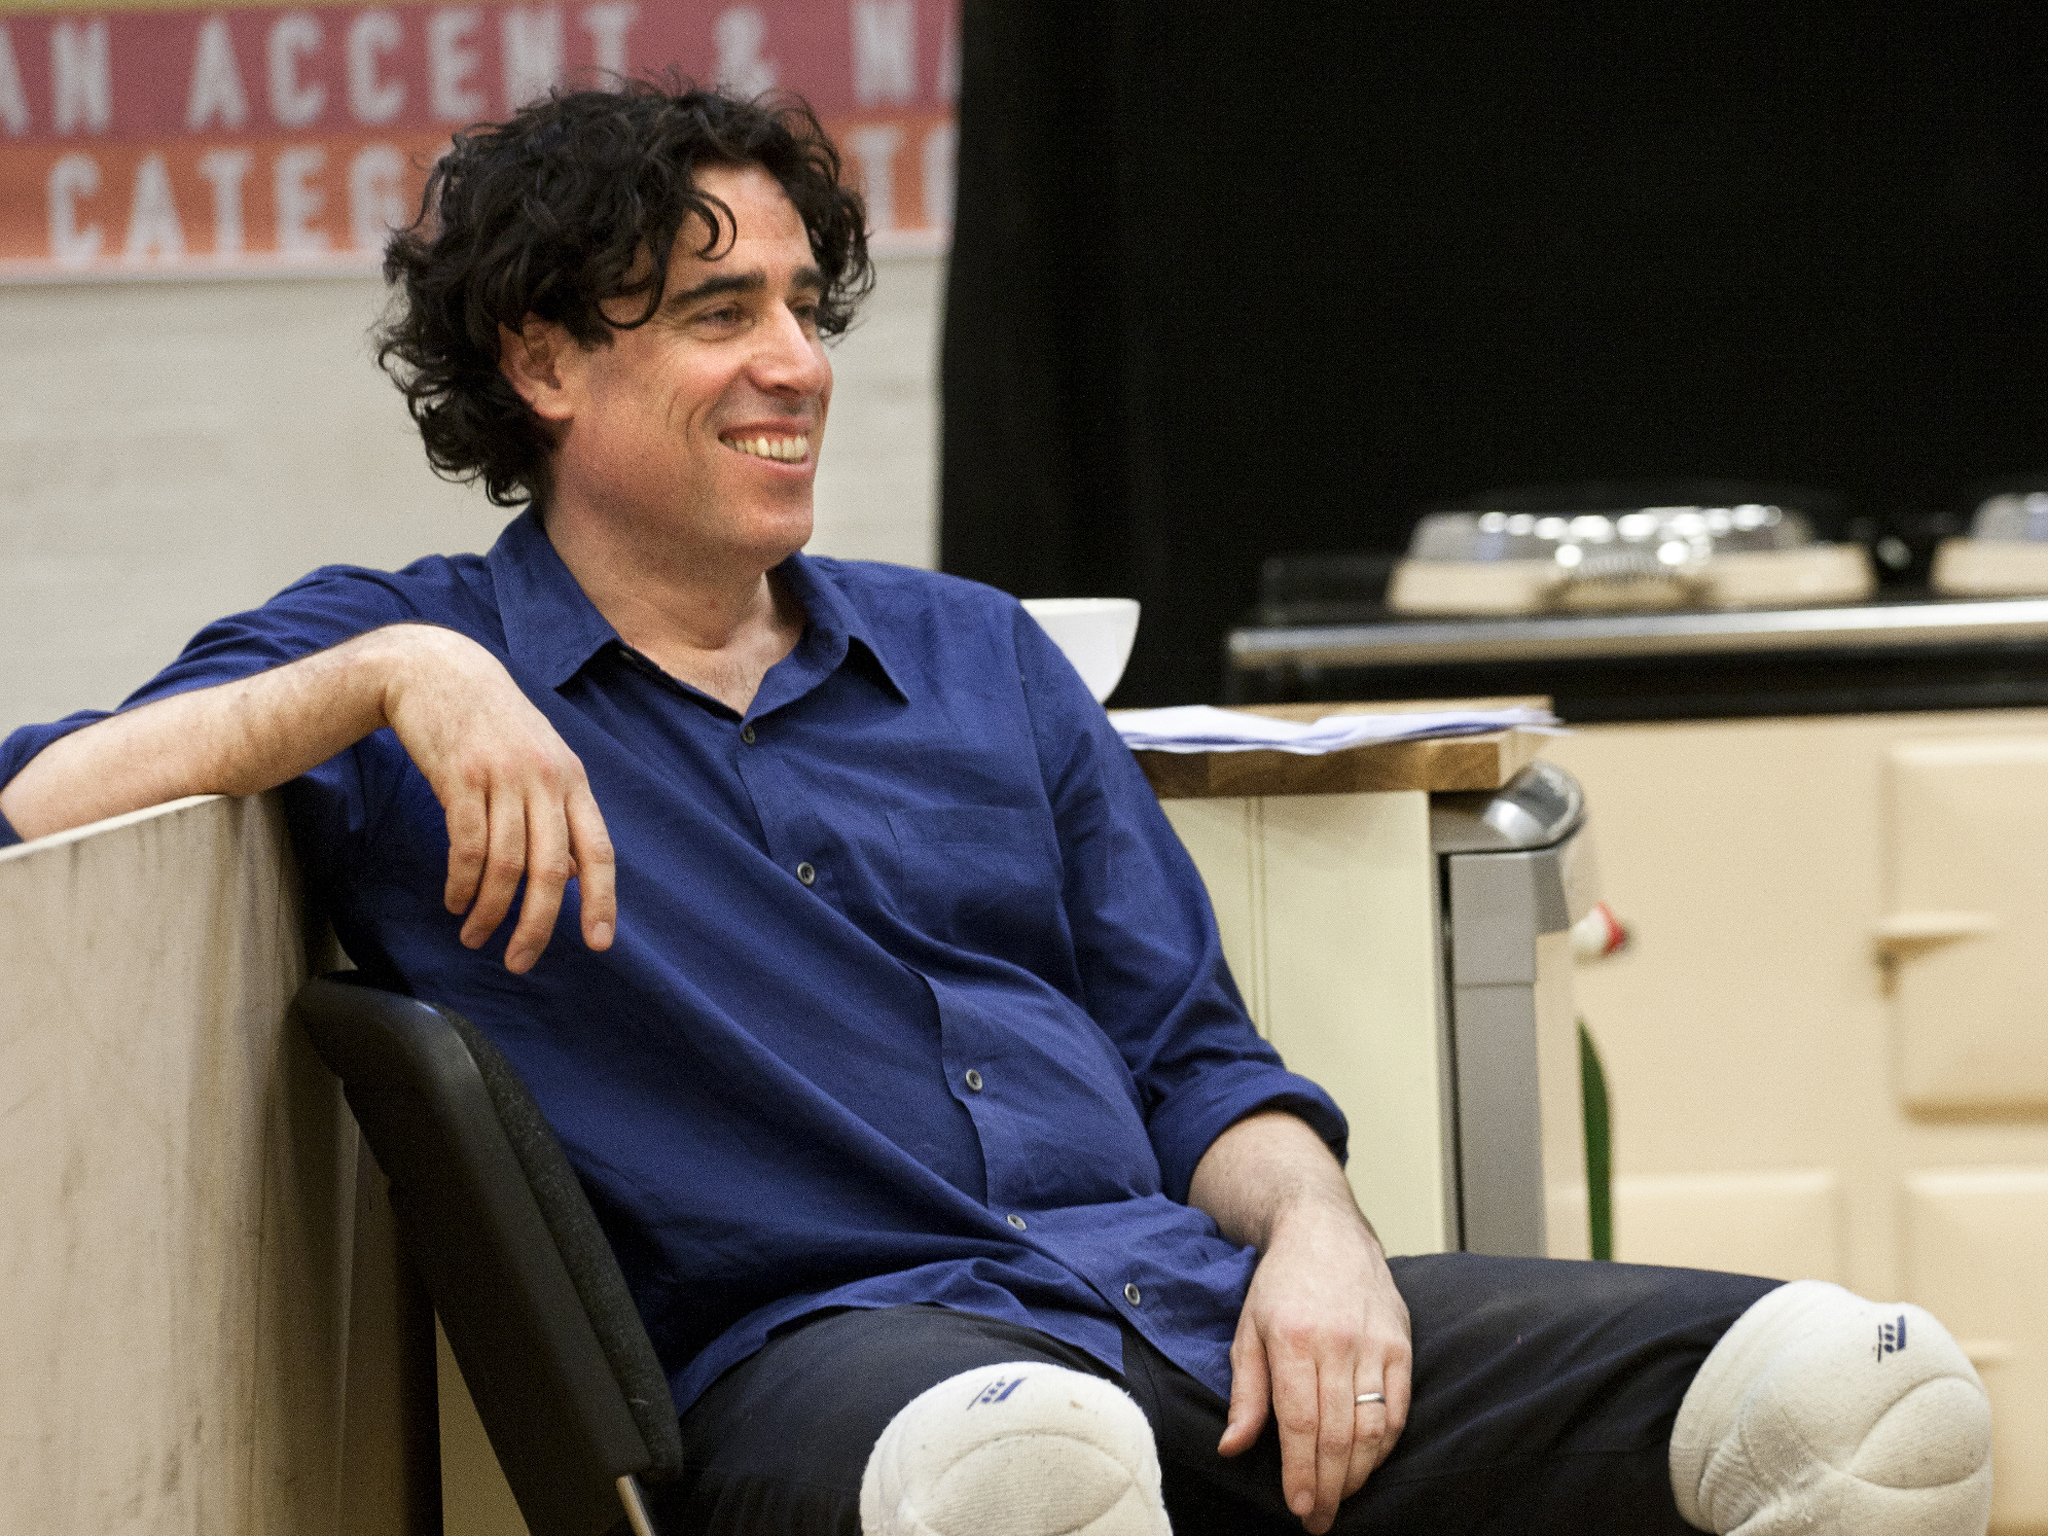 Stephen Mangan on 'Rules for Living' and onstage mishaps